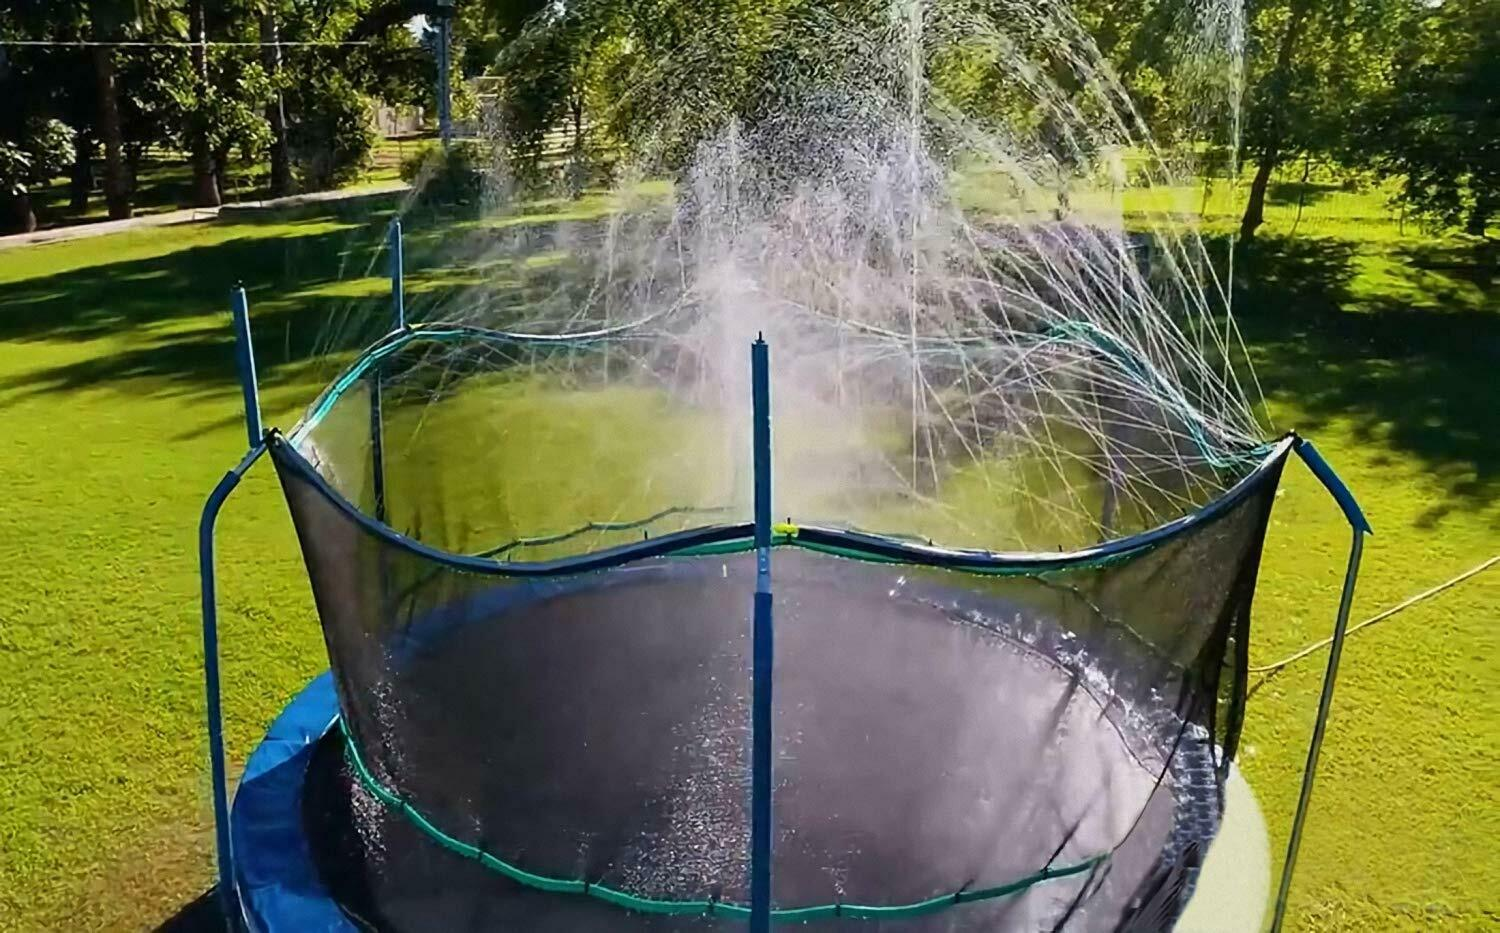 trampoline waterpark fun summer fun water cooling